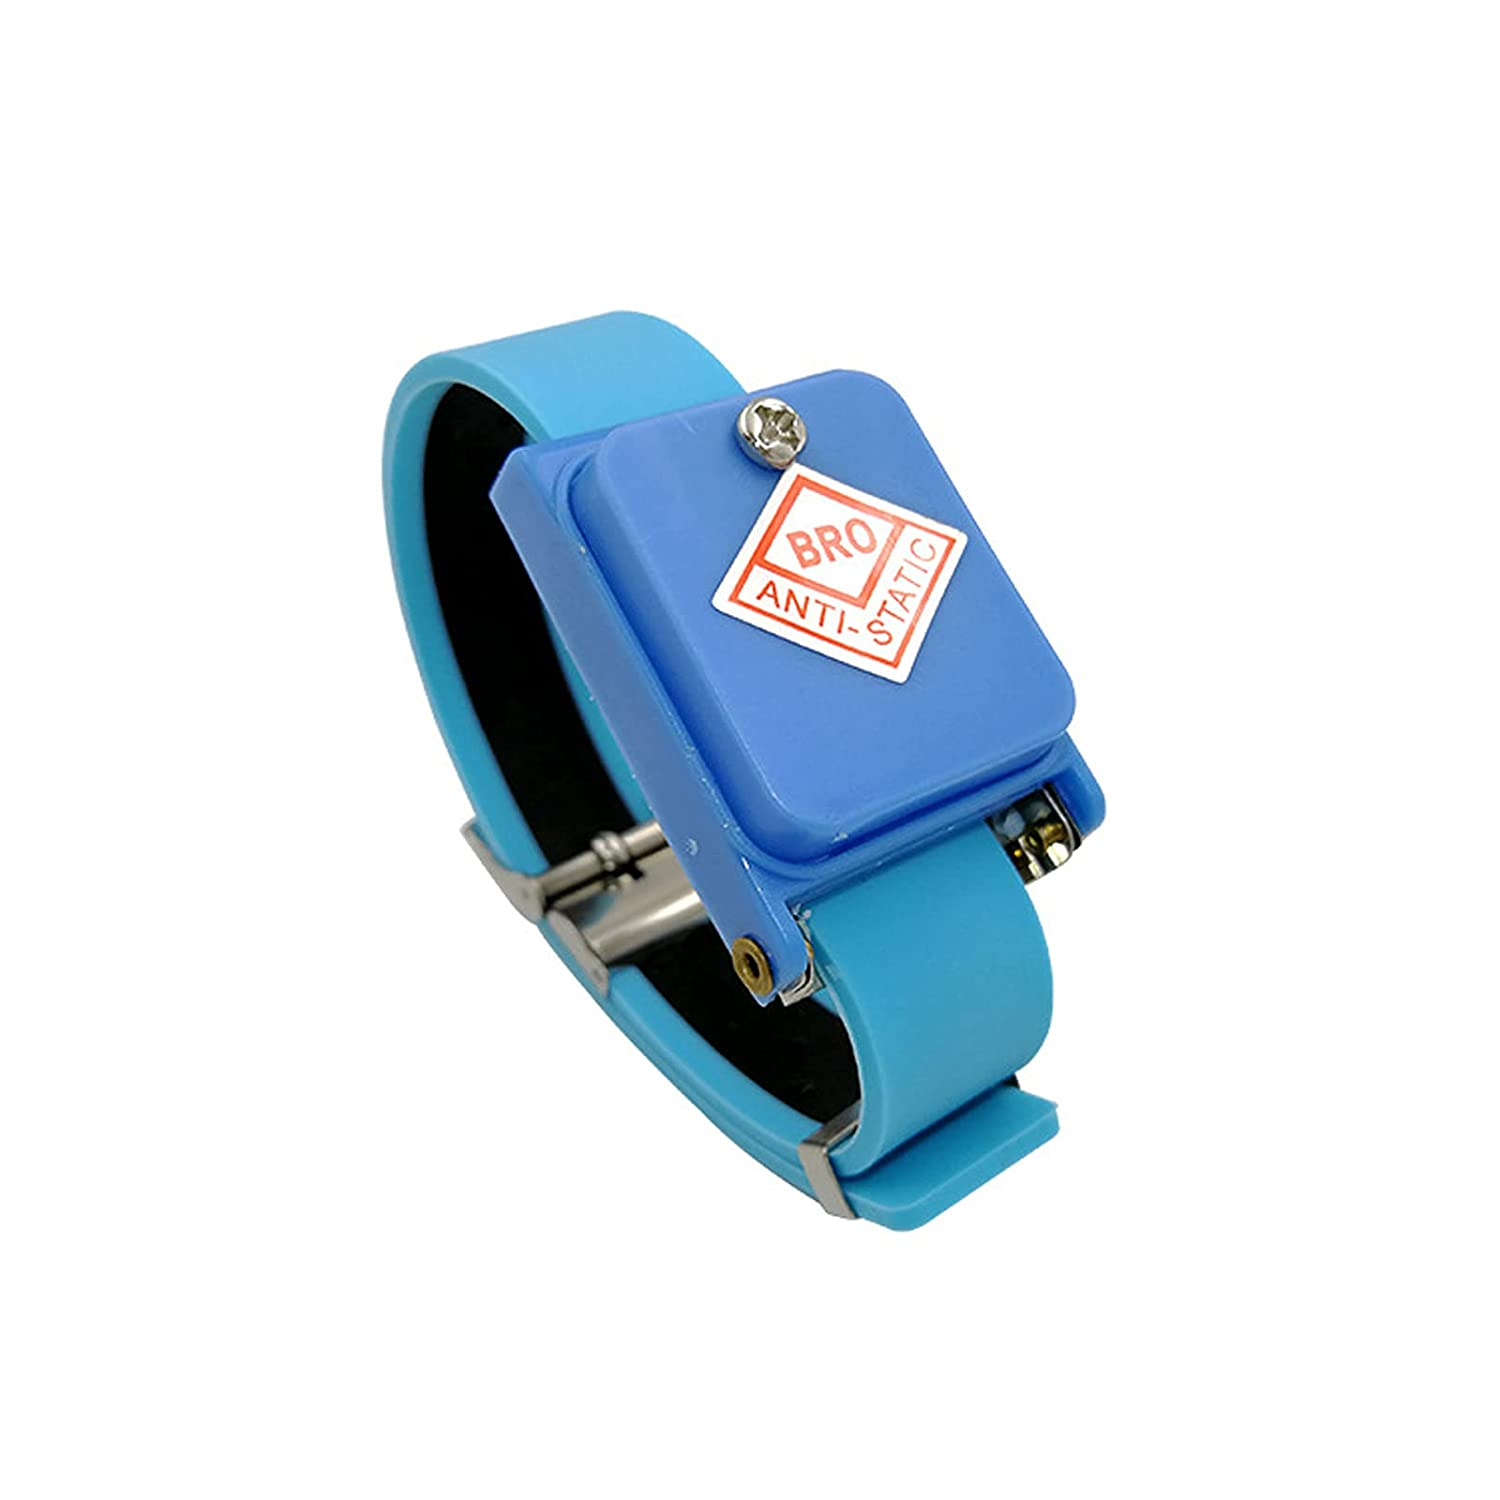 Oakland Mall Cordless Silicone Wrist Strap We OFFer at cheap prices Wr Electronics Anti-Static Factory